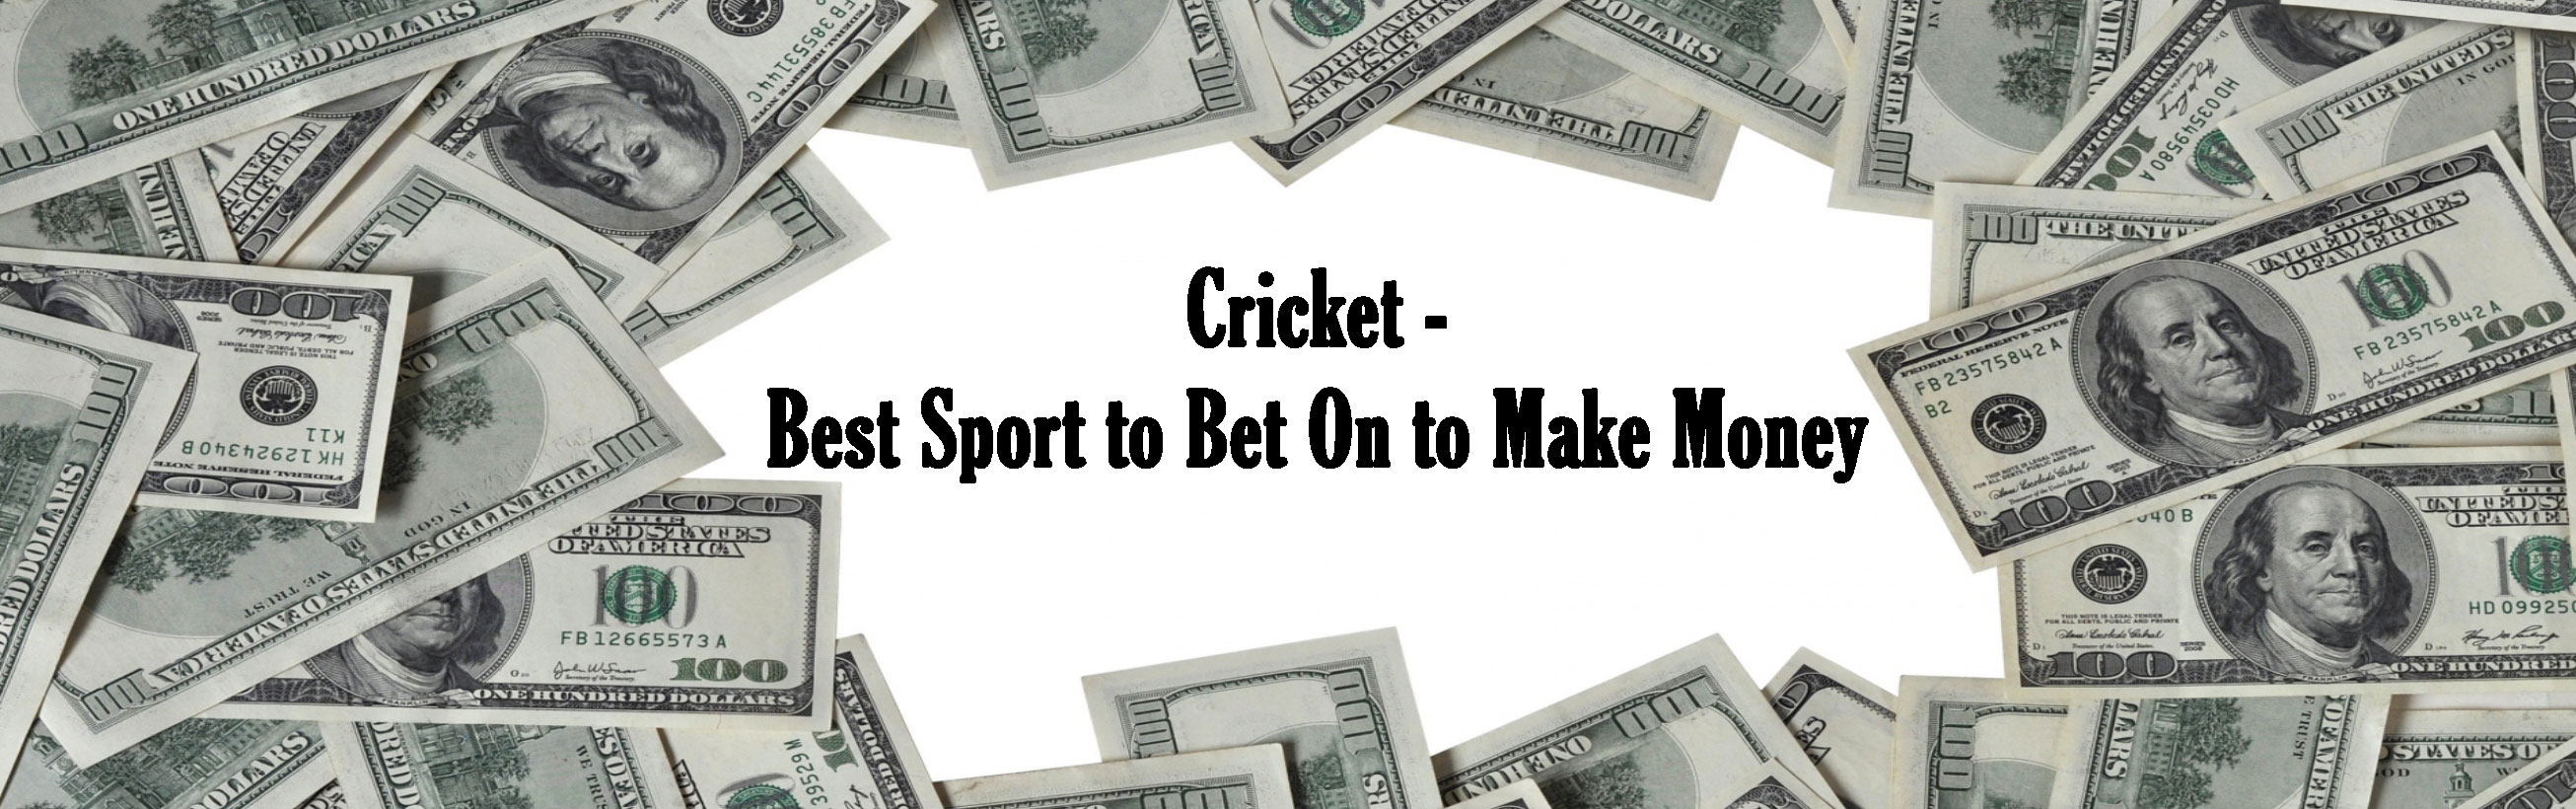 Cricket - Best Sport to Bet On to Make Money